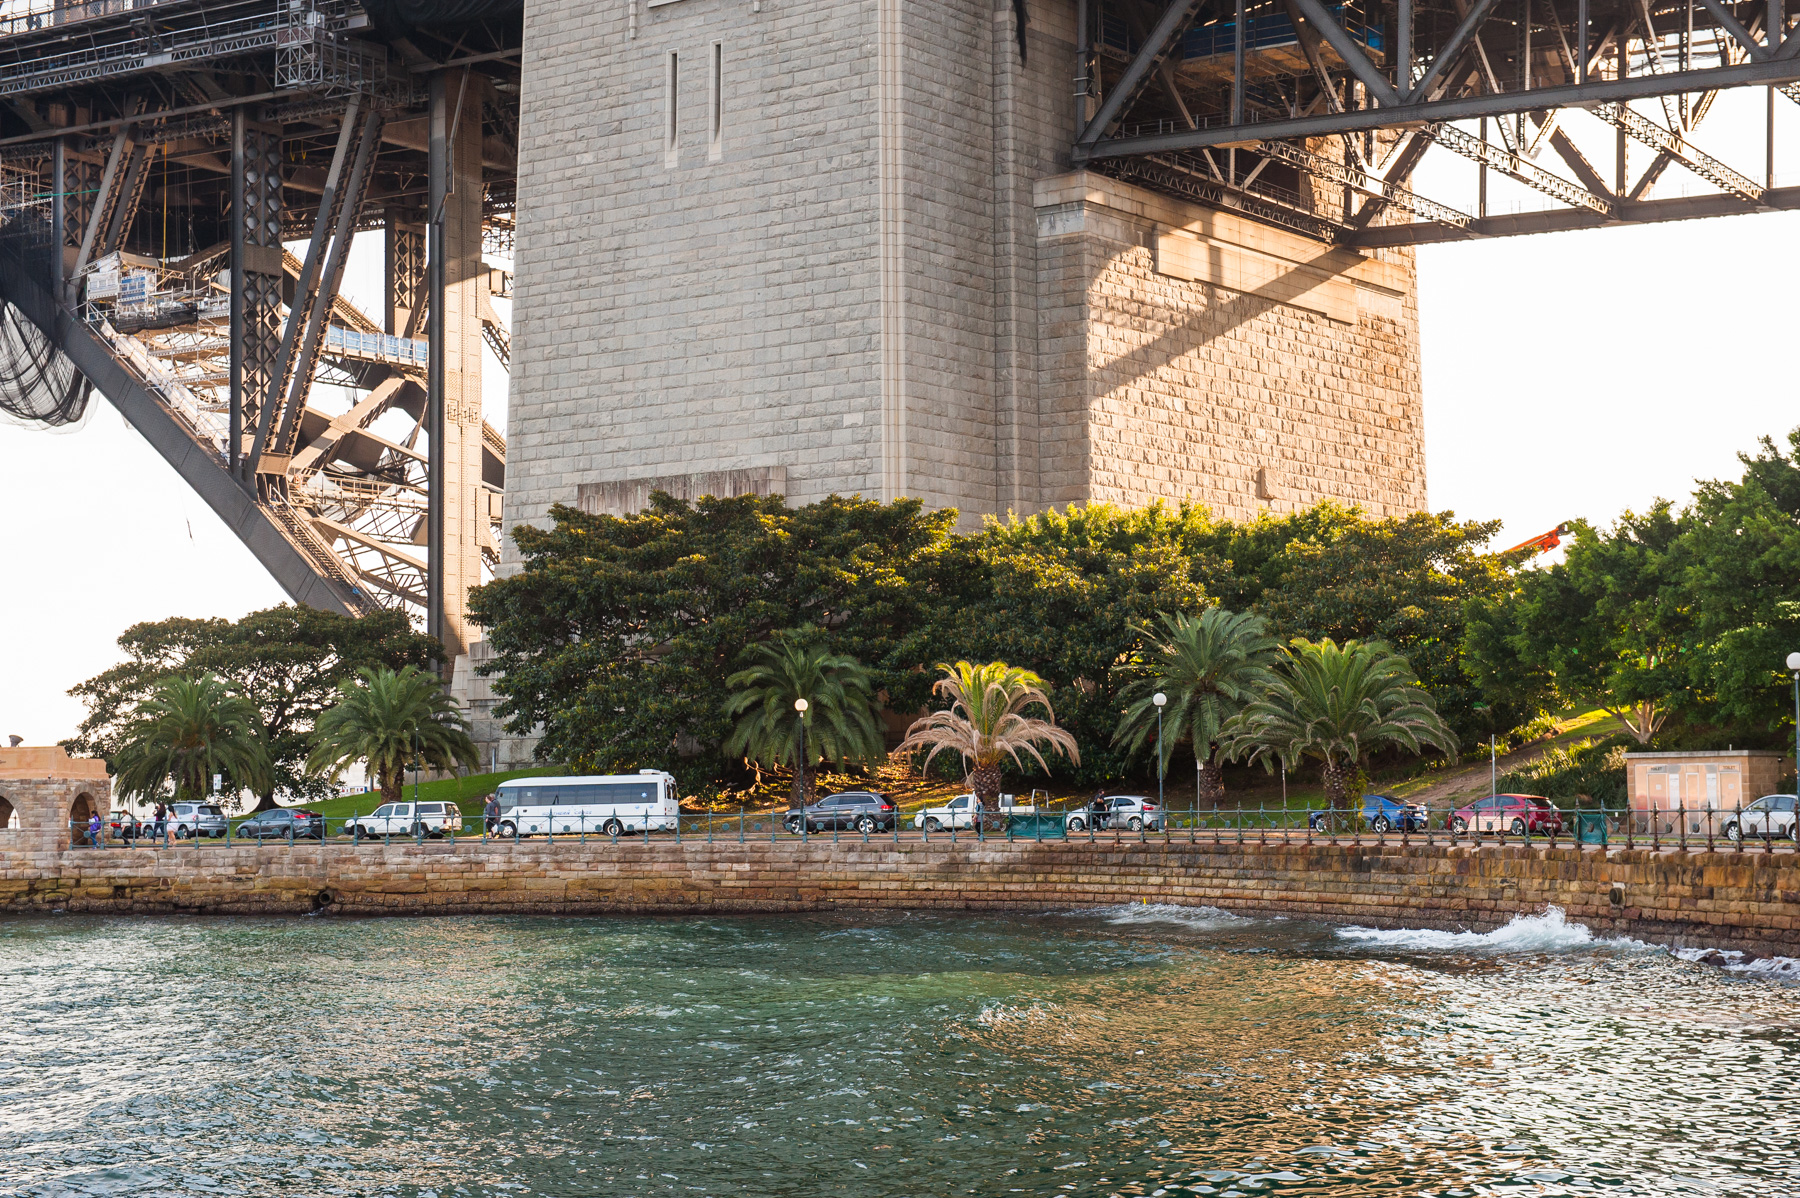 View to Bradfield Park | Under the harbour Bridge | Note - Public toilets on right